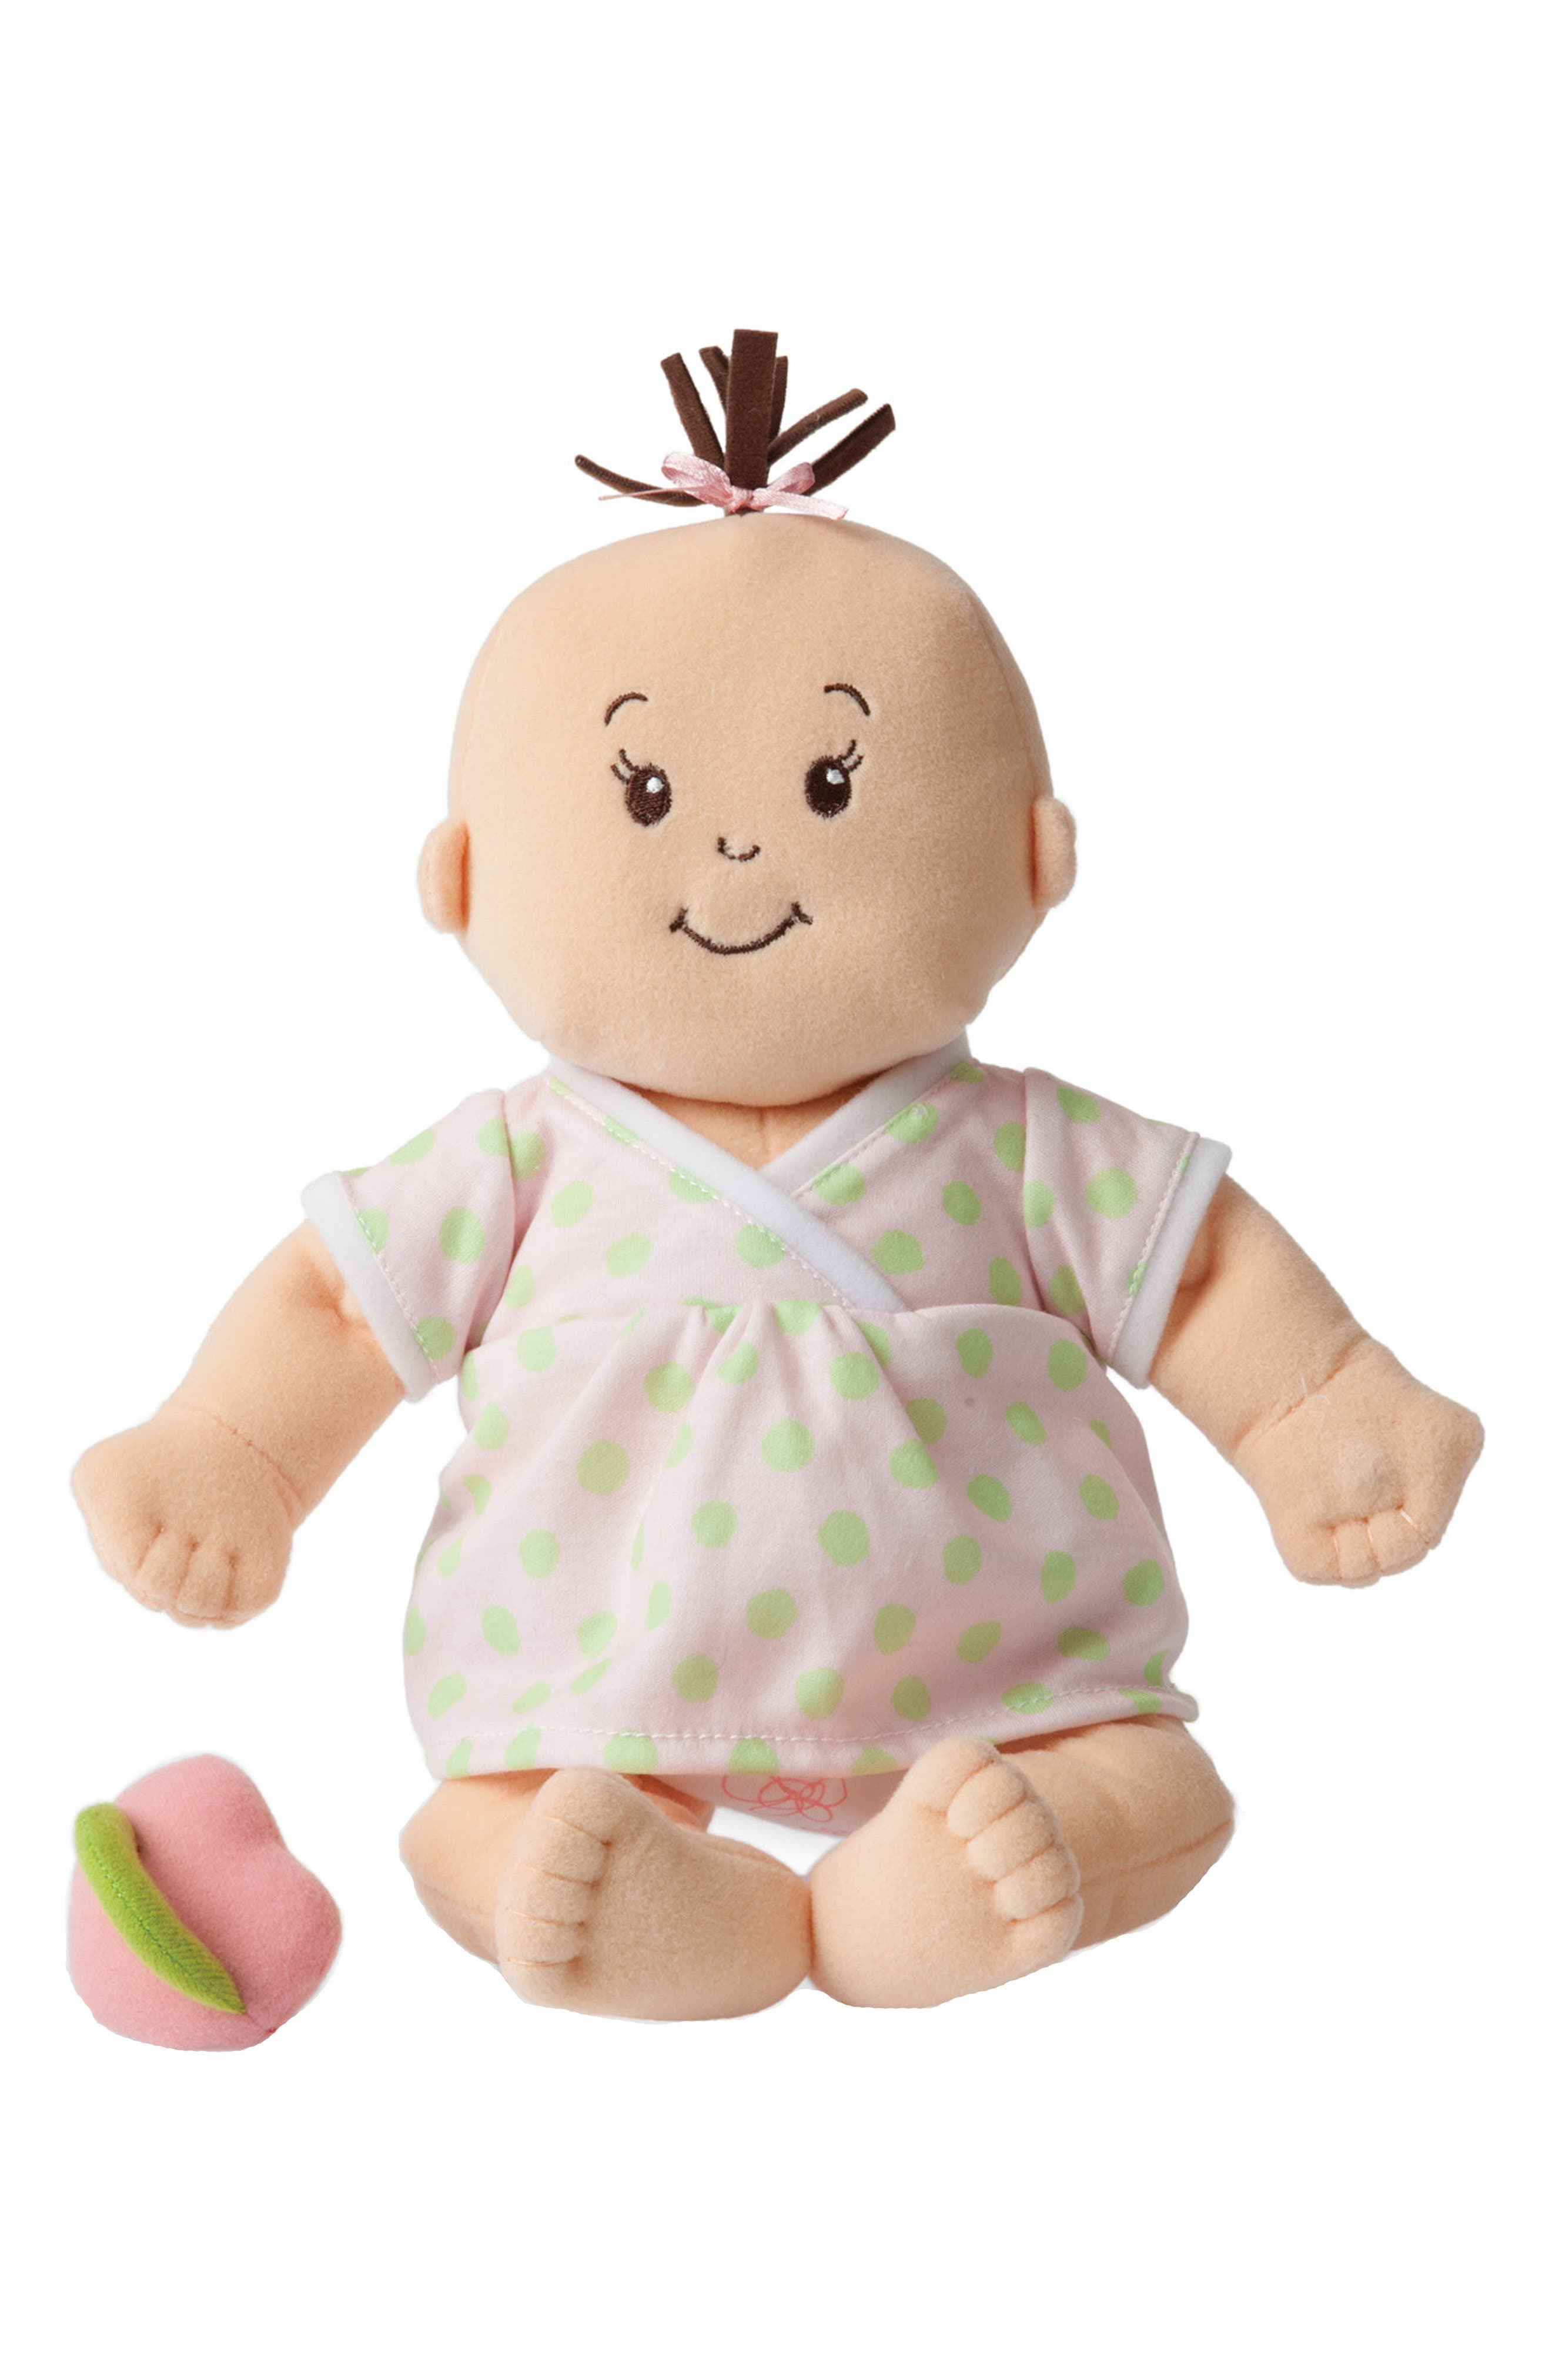 Baby Stella Sweet Sounds Doll,                             Main thumbnail 1, color,                             White